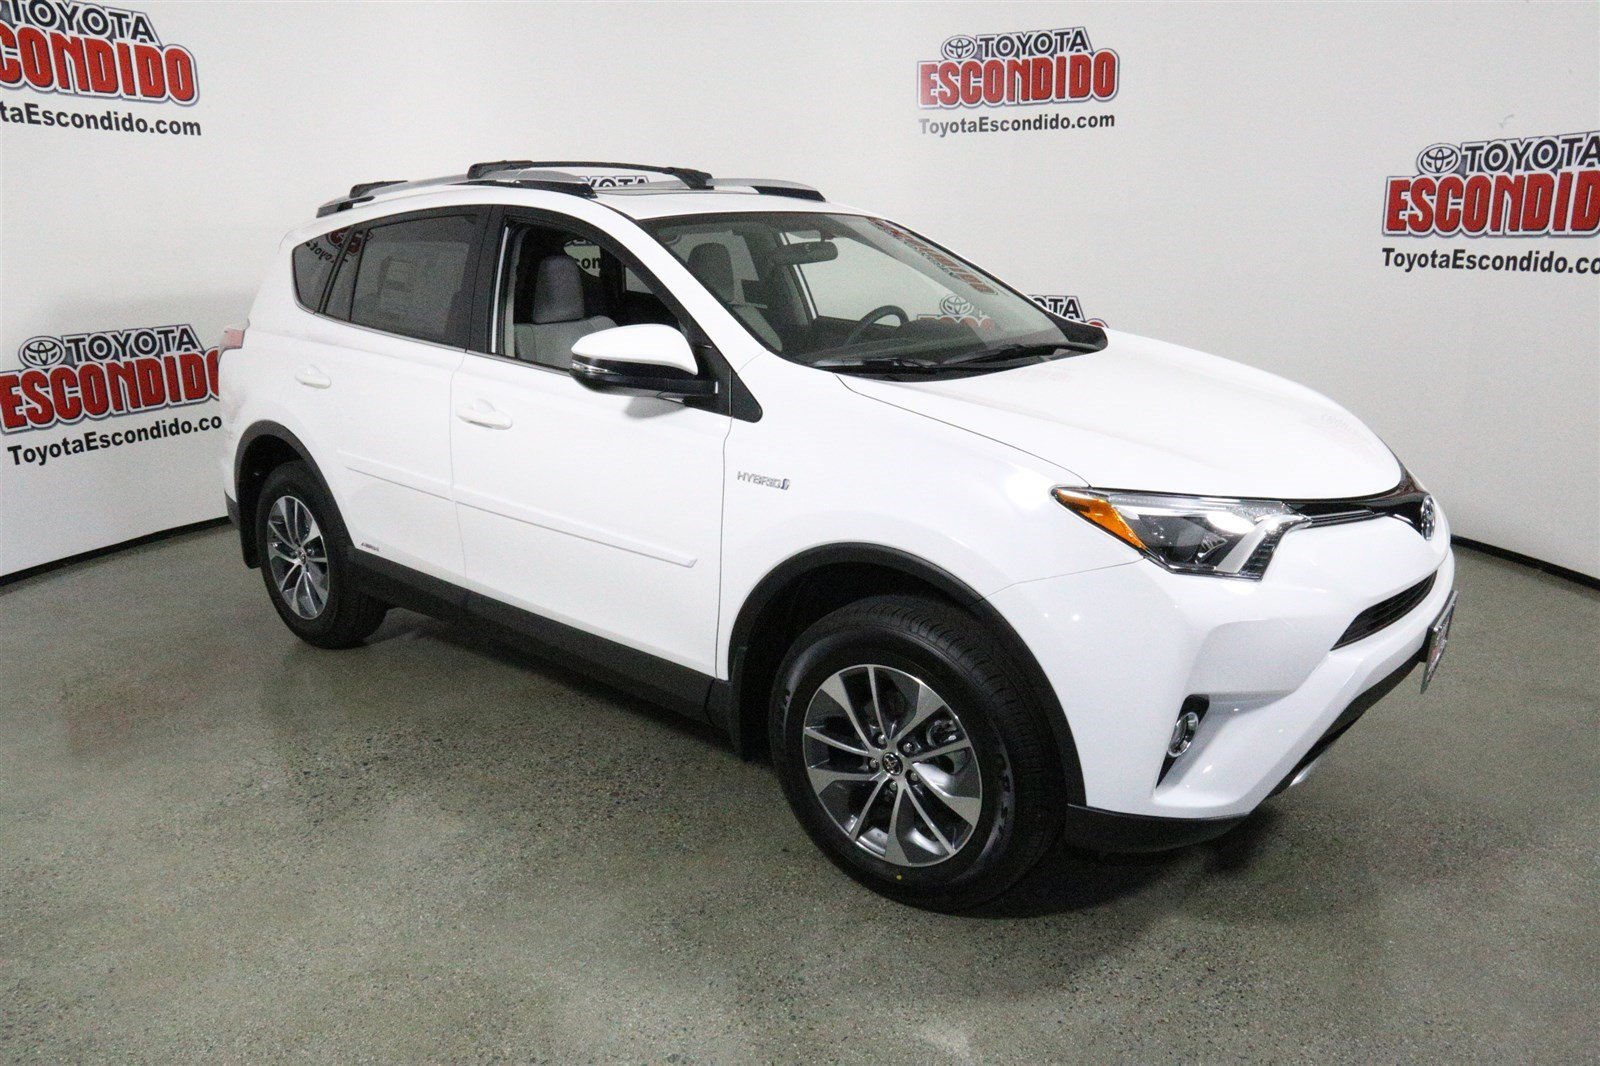 new 2017 toyota rav4 hybrid xle sport utility in escondido 1013673 toyota of escondido. Black Bedroom Furniture Sets. Home Design Ideas